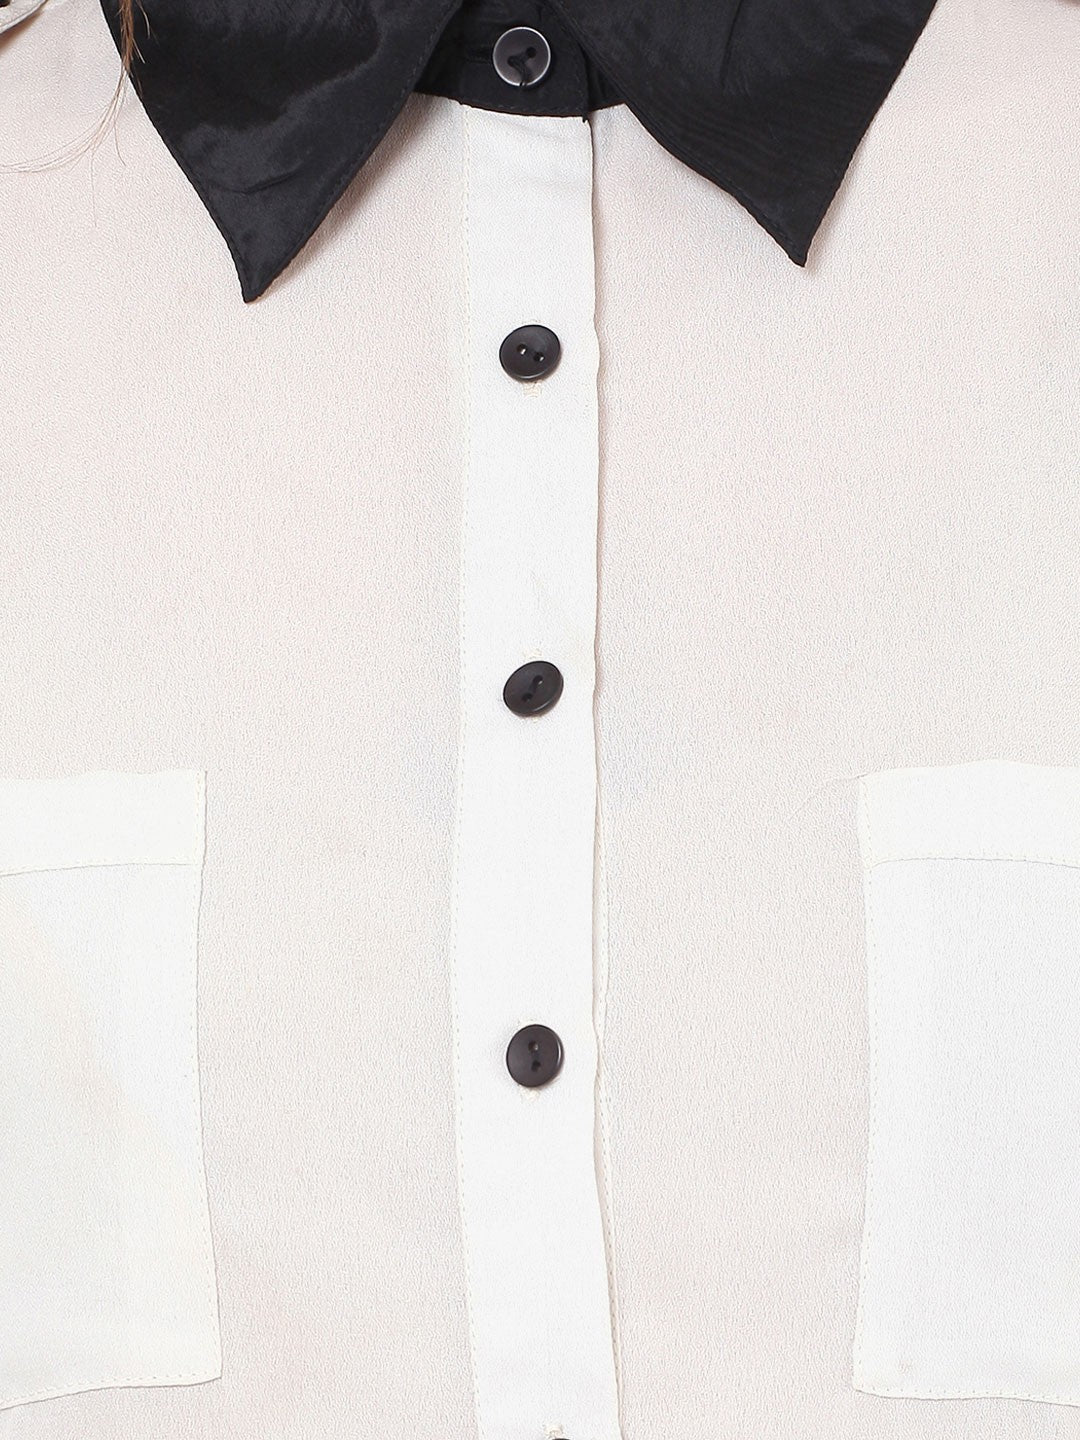 White & Black Full Sleeve Shirt